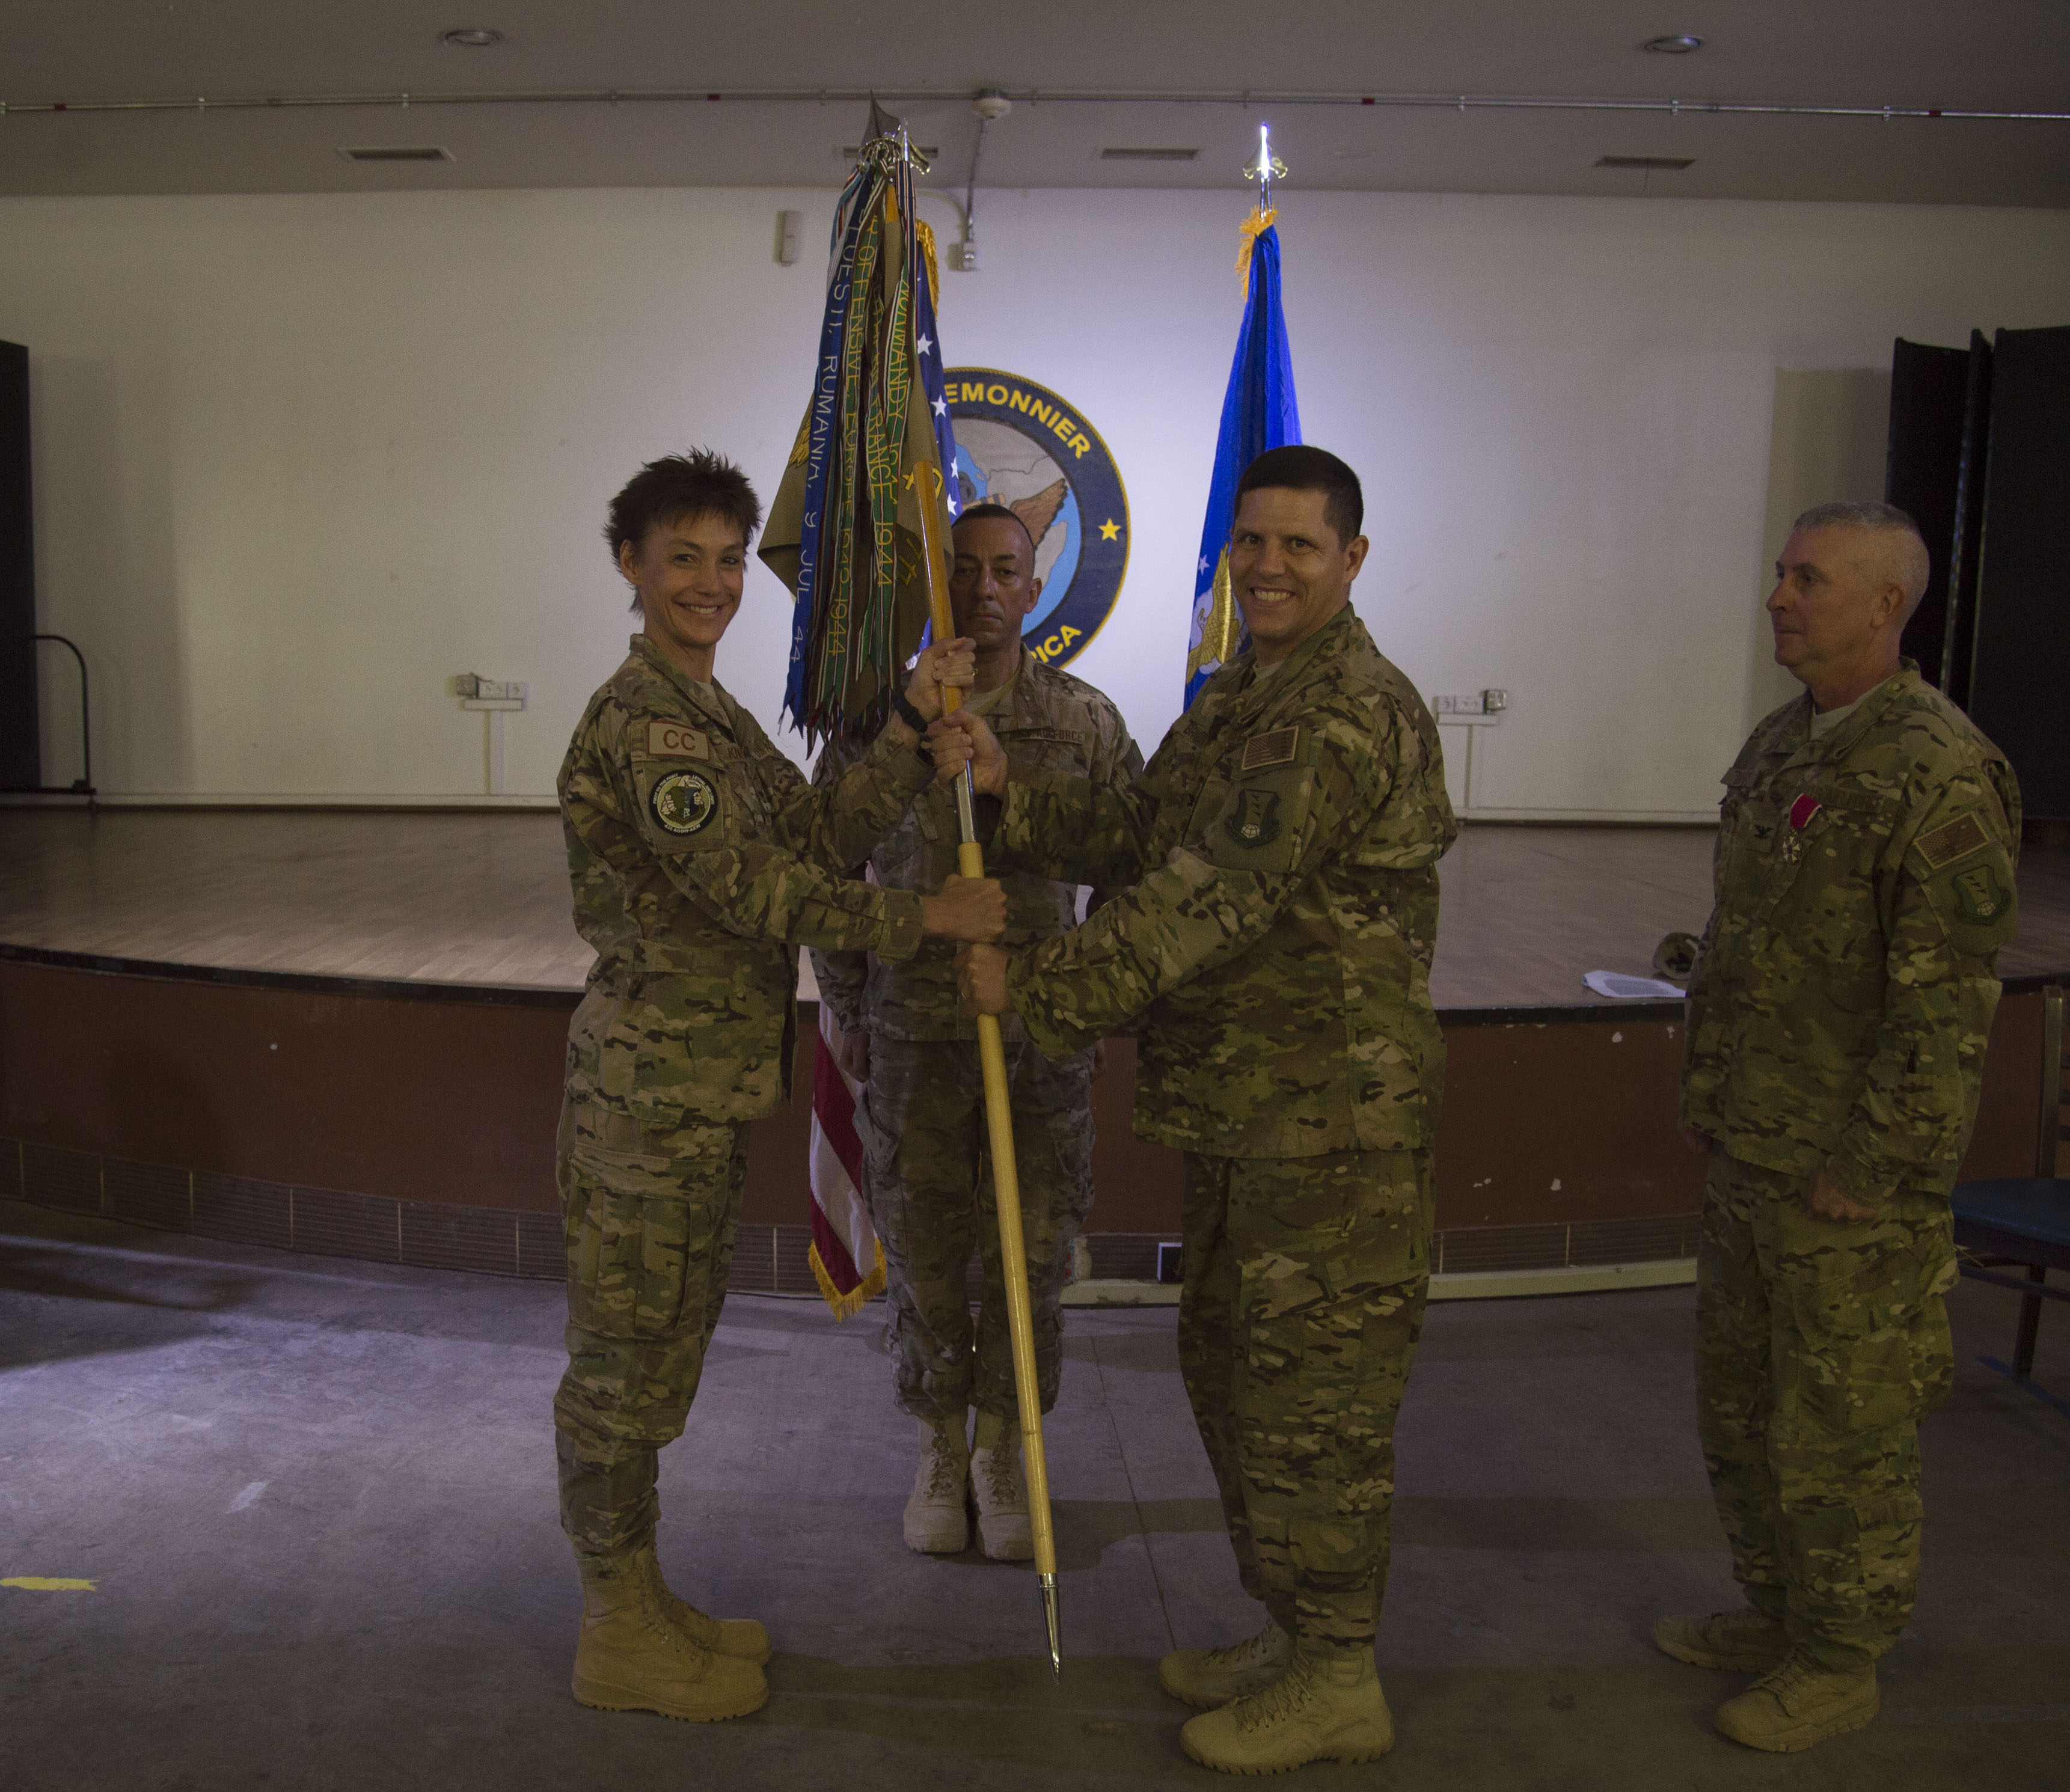 U.S. Air Force Col. Michael Bruzzini, 449th Air Expeditionary Group incoming commander, receives the 449th AEG flag from U.S. Air Force Col. Andra Kniep, 435th Air Expeditionary Wing commander, during the 449th AEG Change of Command ceremony June 6, 2016, at Camp Lemonnier, Djibouti. The passing of the flag is a military tradition signifying the change of authority and responsibility of a unit from one commander to another. (U.S. Air Force photo by Staff Sgt. Eric Summers Jr.)